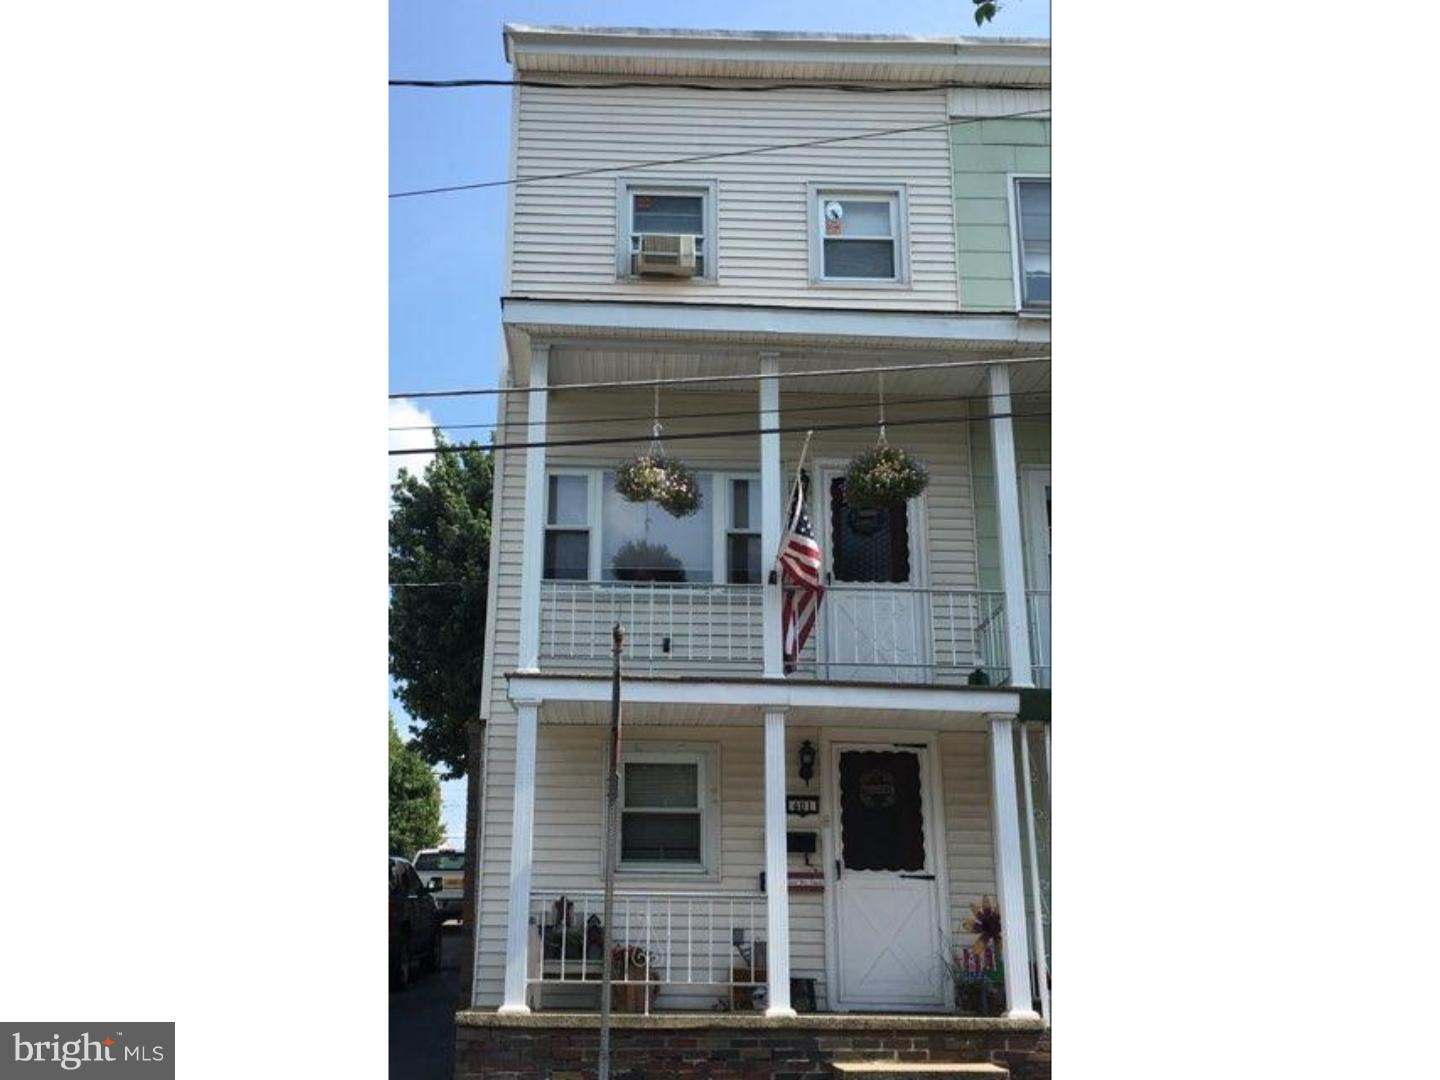 401 LYTLE STREET, MINERSVILLE, PA 17954